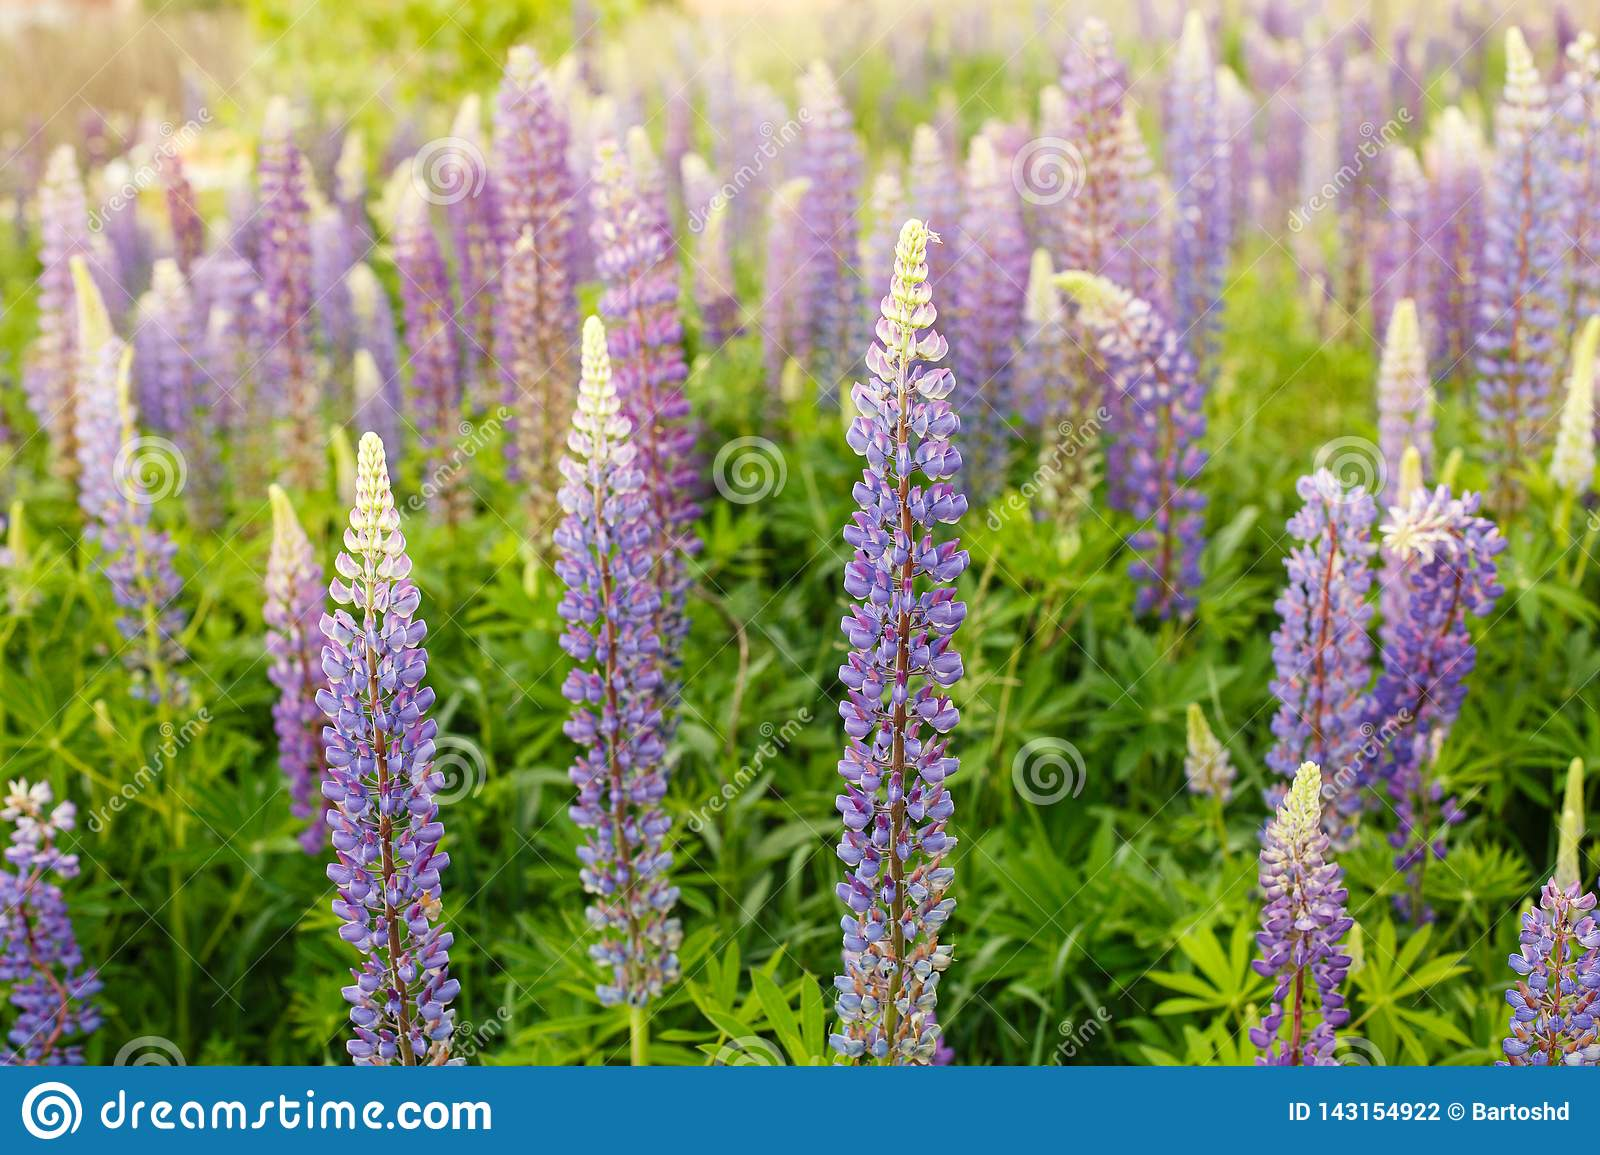 Lupine field with pink purple and blue flowers. Bunch of lupines summer flower background. Lupinus